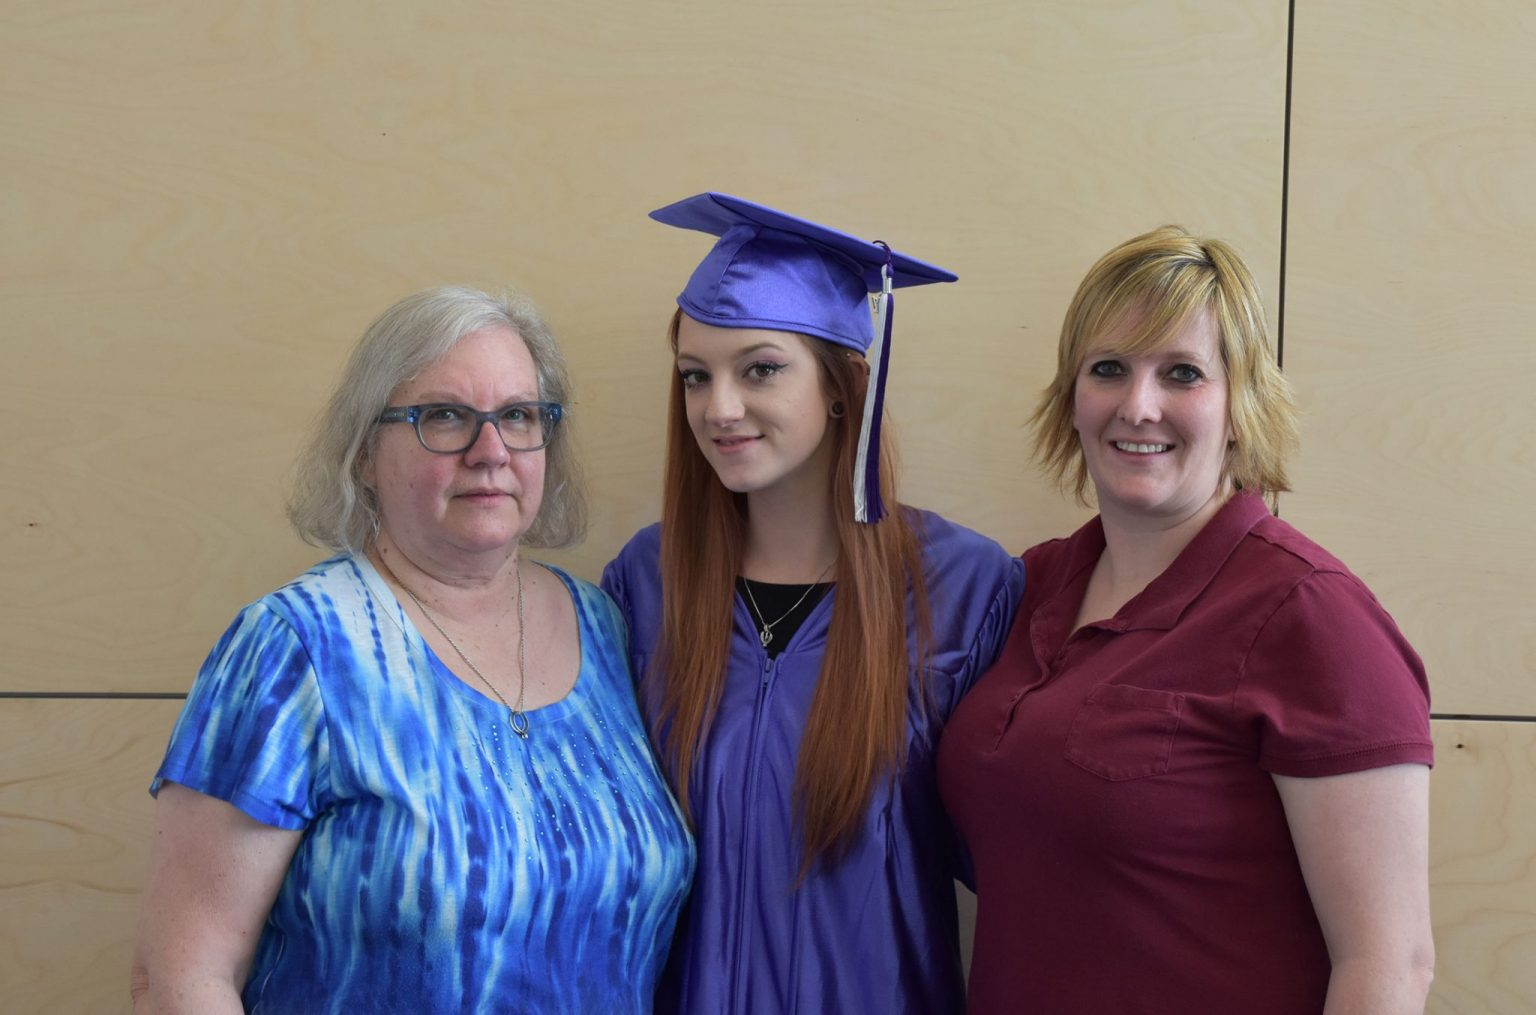 The graduation ceremony marks the start of the next step for high school equivalency graduates.